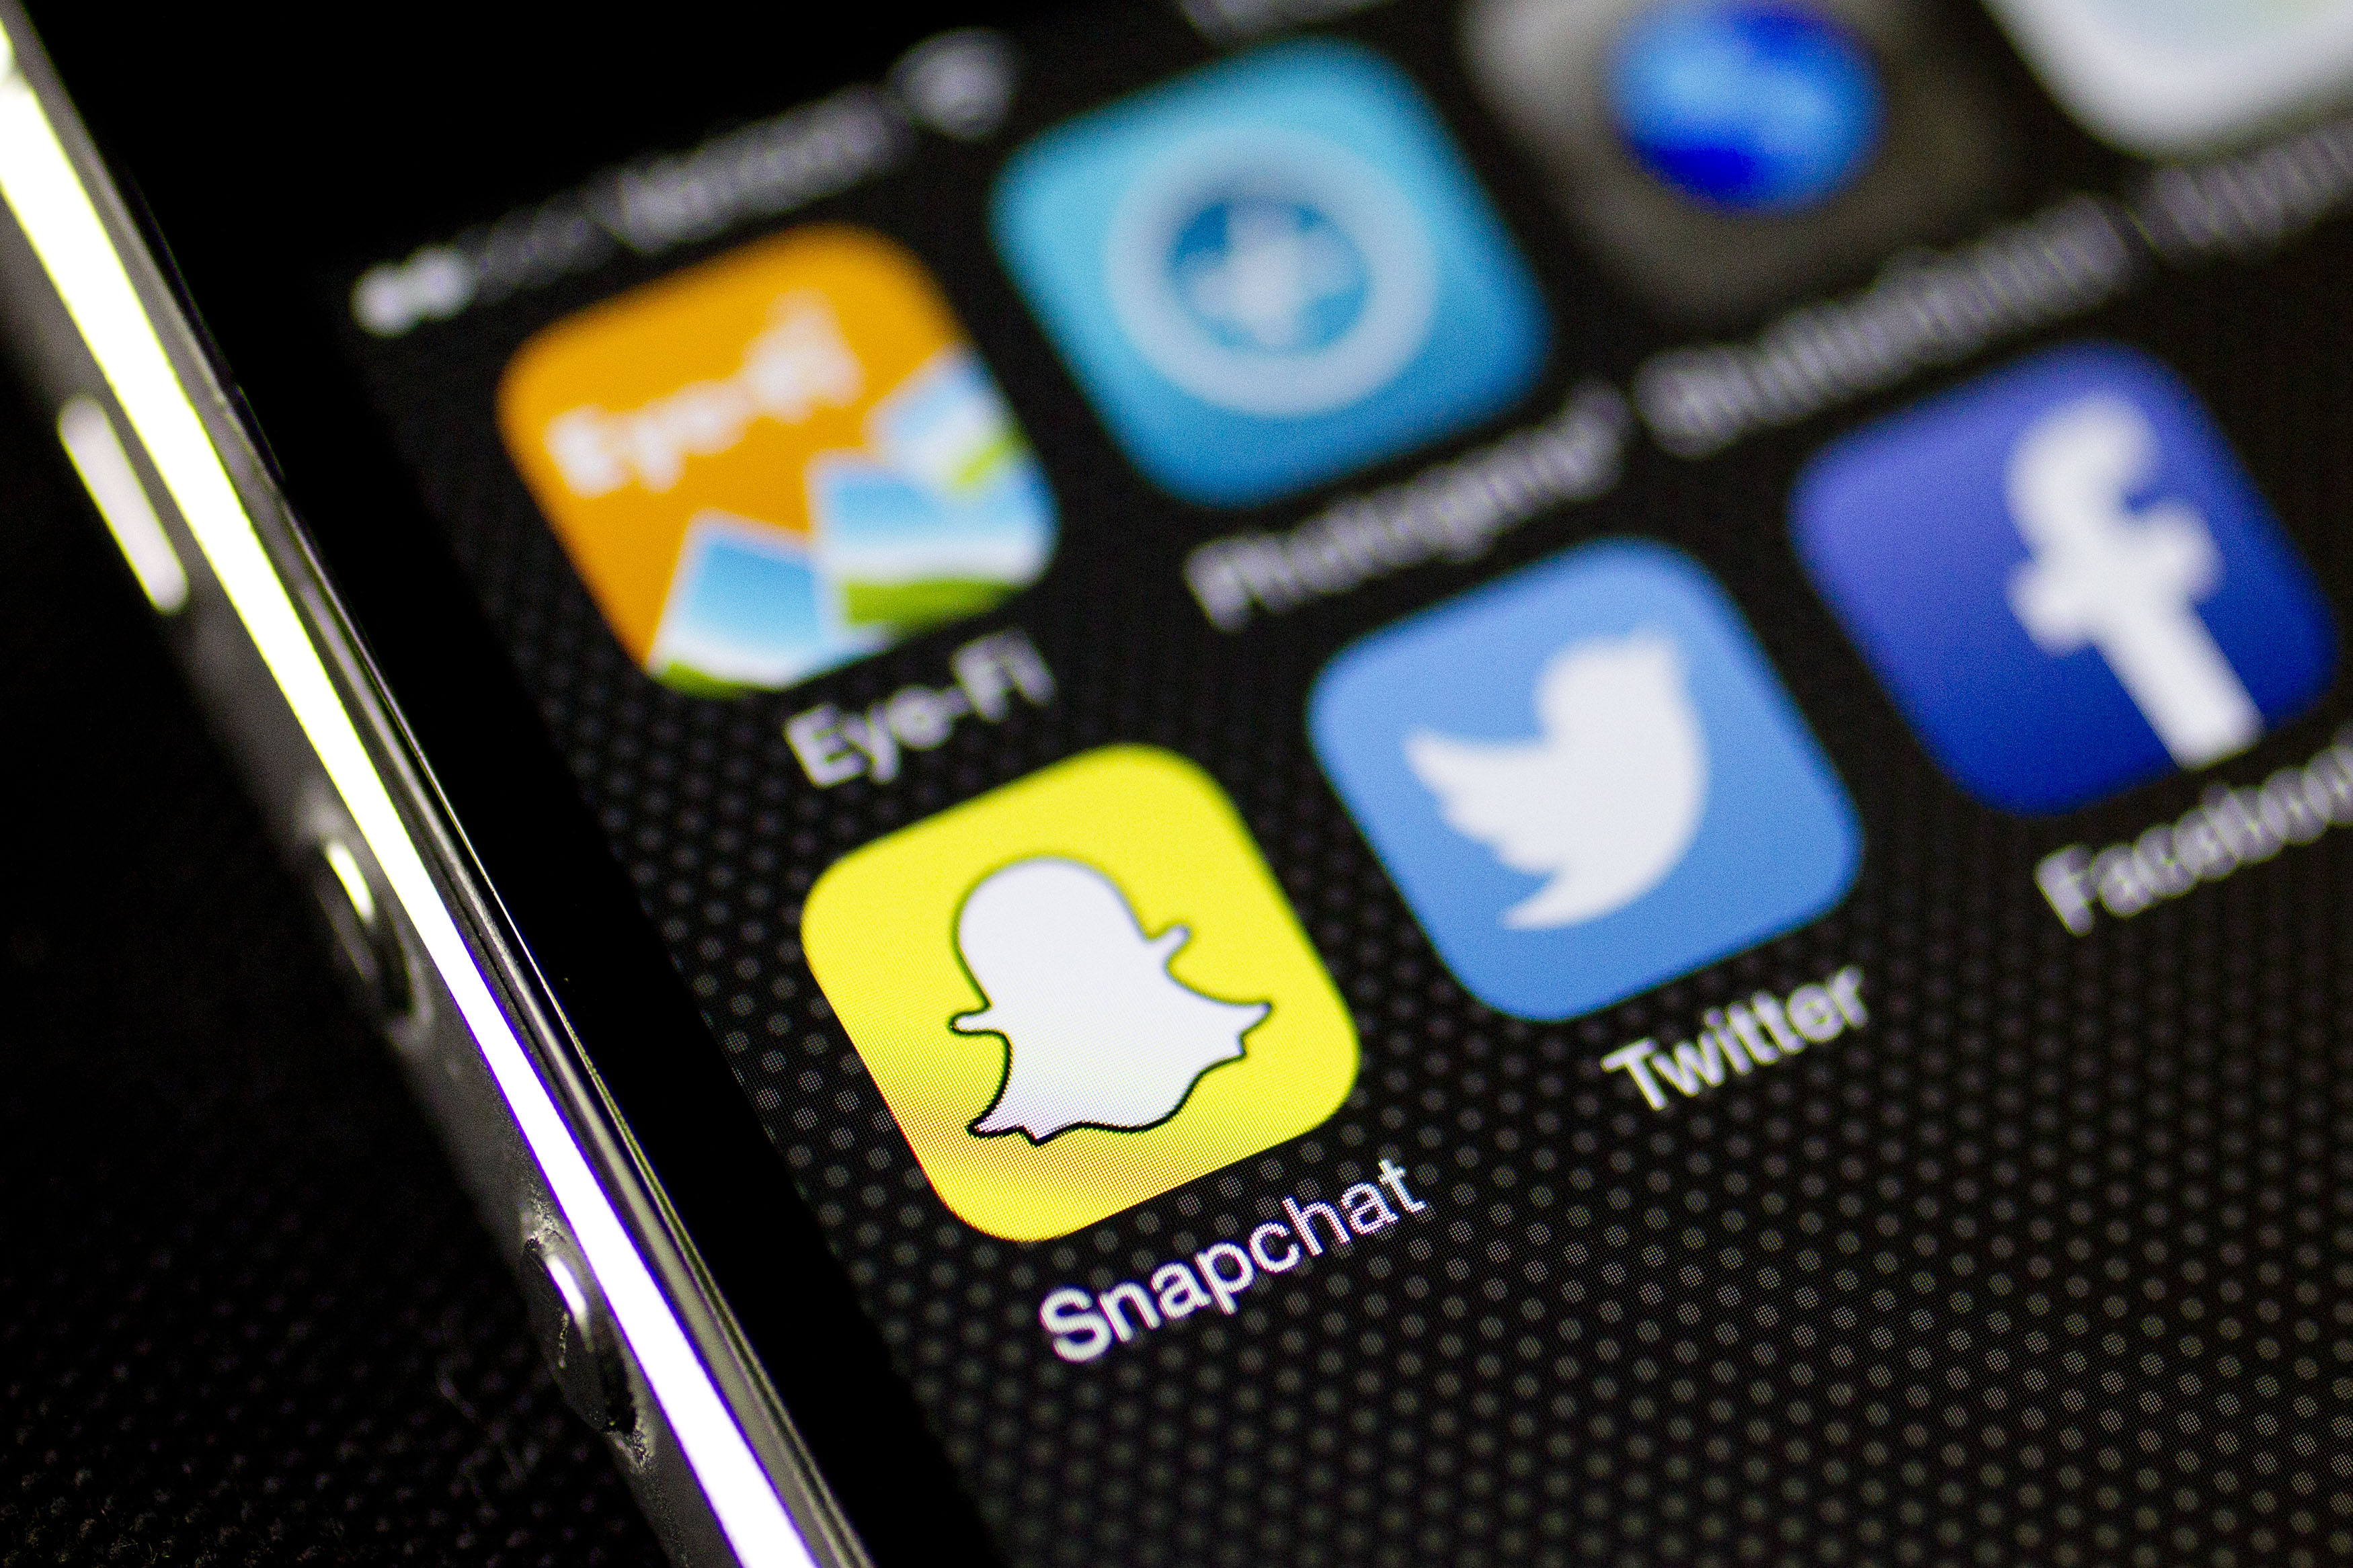 Snapchat is seen on an on an Apple Inc. iPhone 5s displayed for a photograph in Washington, D.C., on  Feb. 18, 2015.